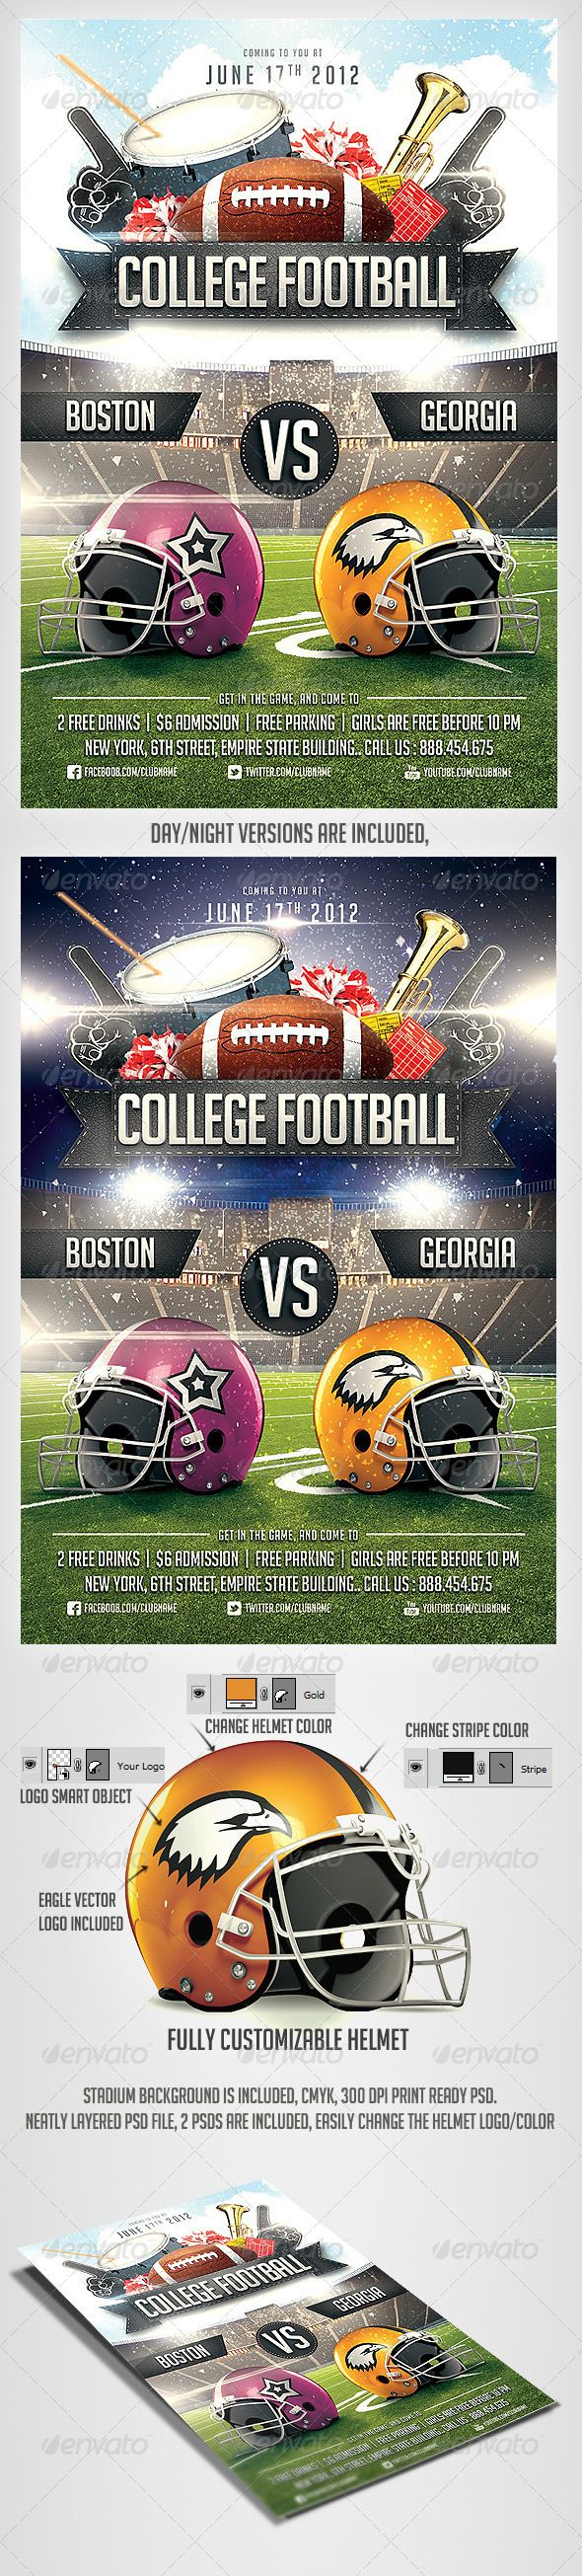 College Football Flyer Template  #flag #flyer #foot • Available here → http://graphicriver.net/item/college-football-flyer-template/2921123?s_rank=14&ref=pxcr